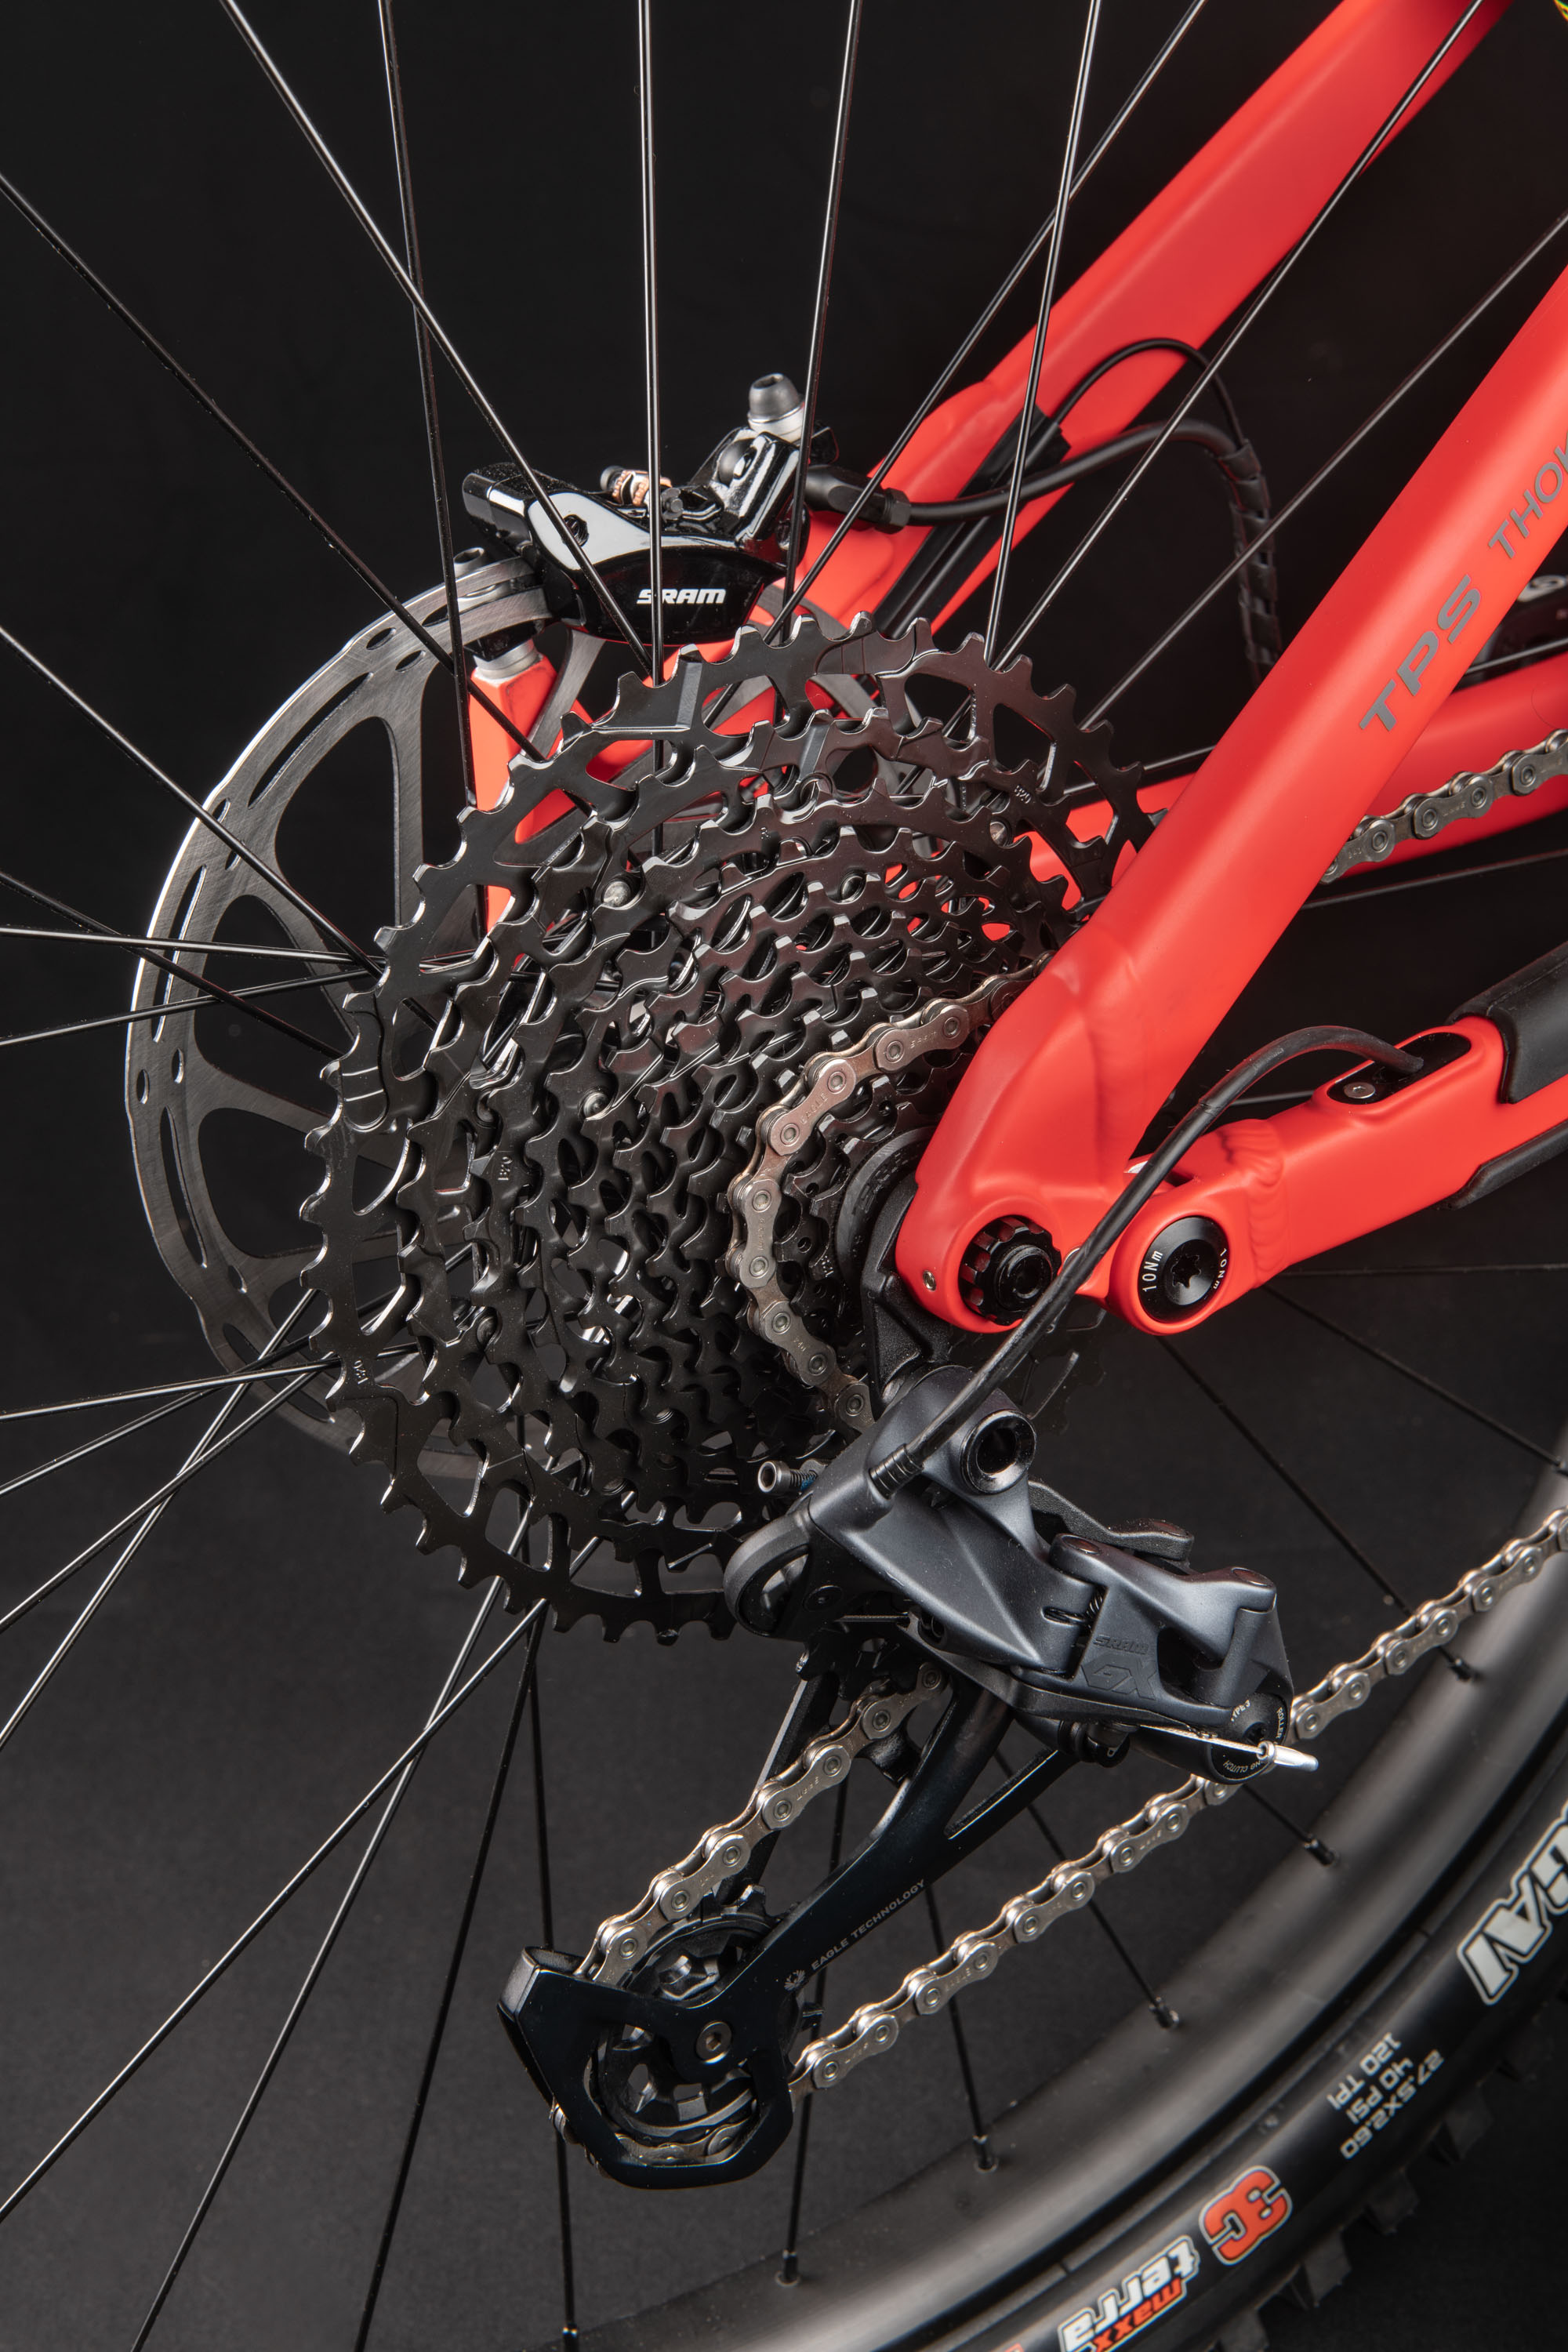 The rear brake and chain. Details make all the difference on Thok Ebikes.